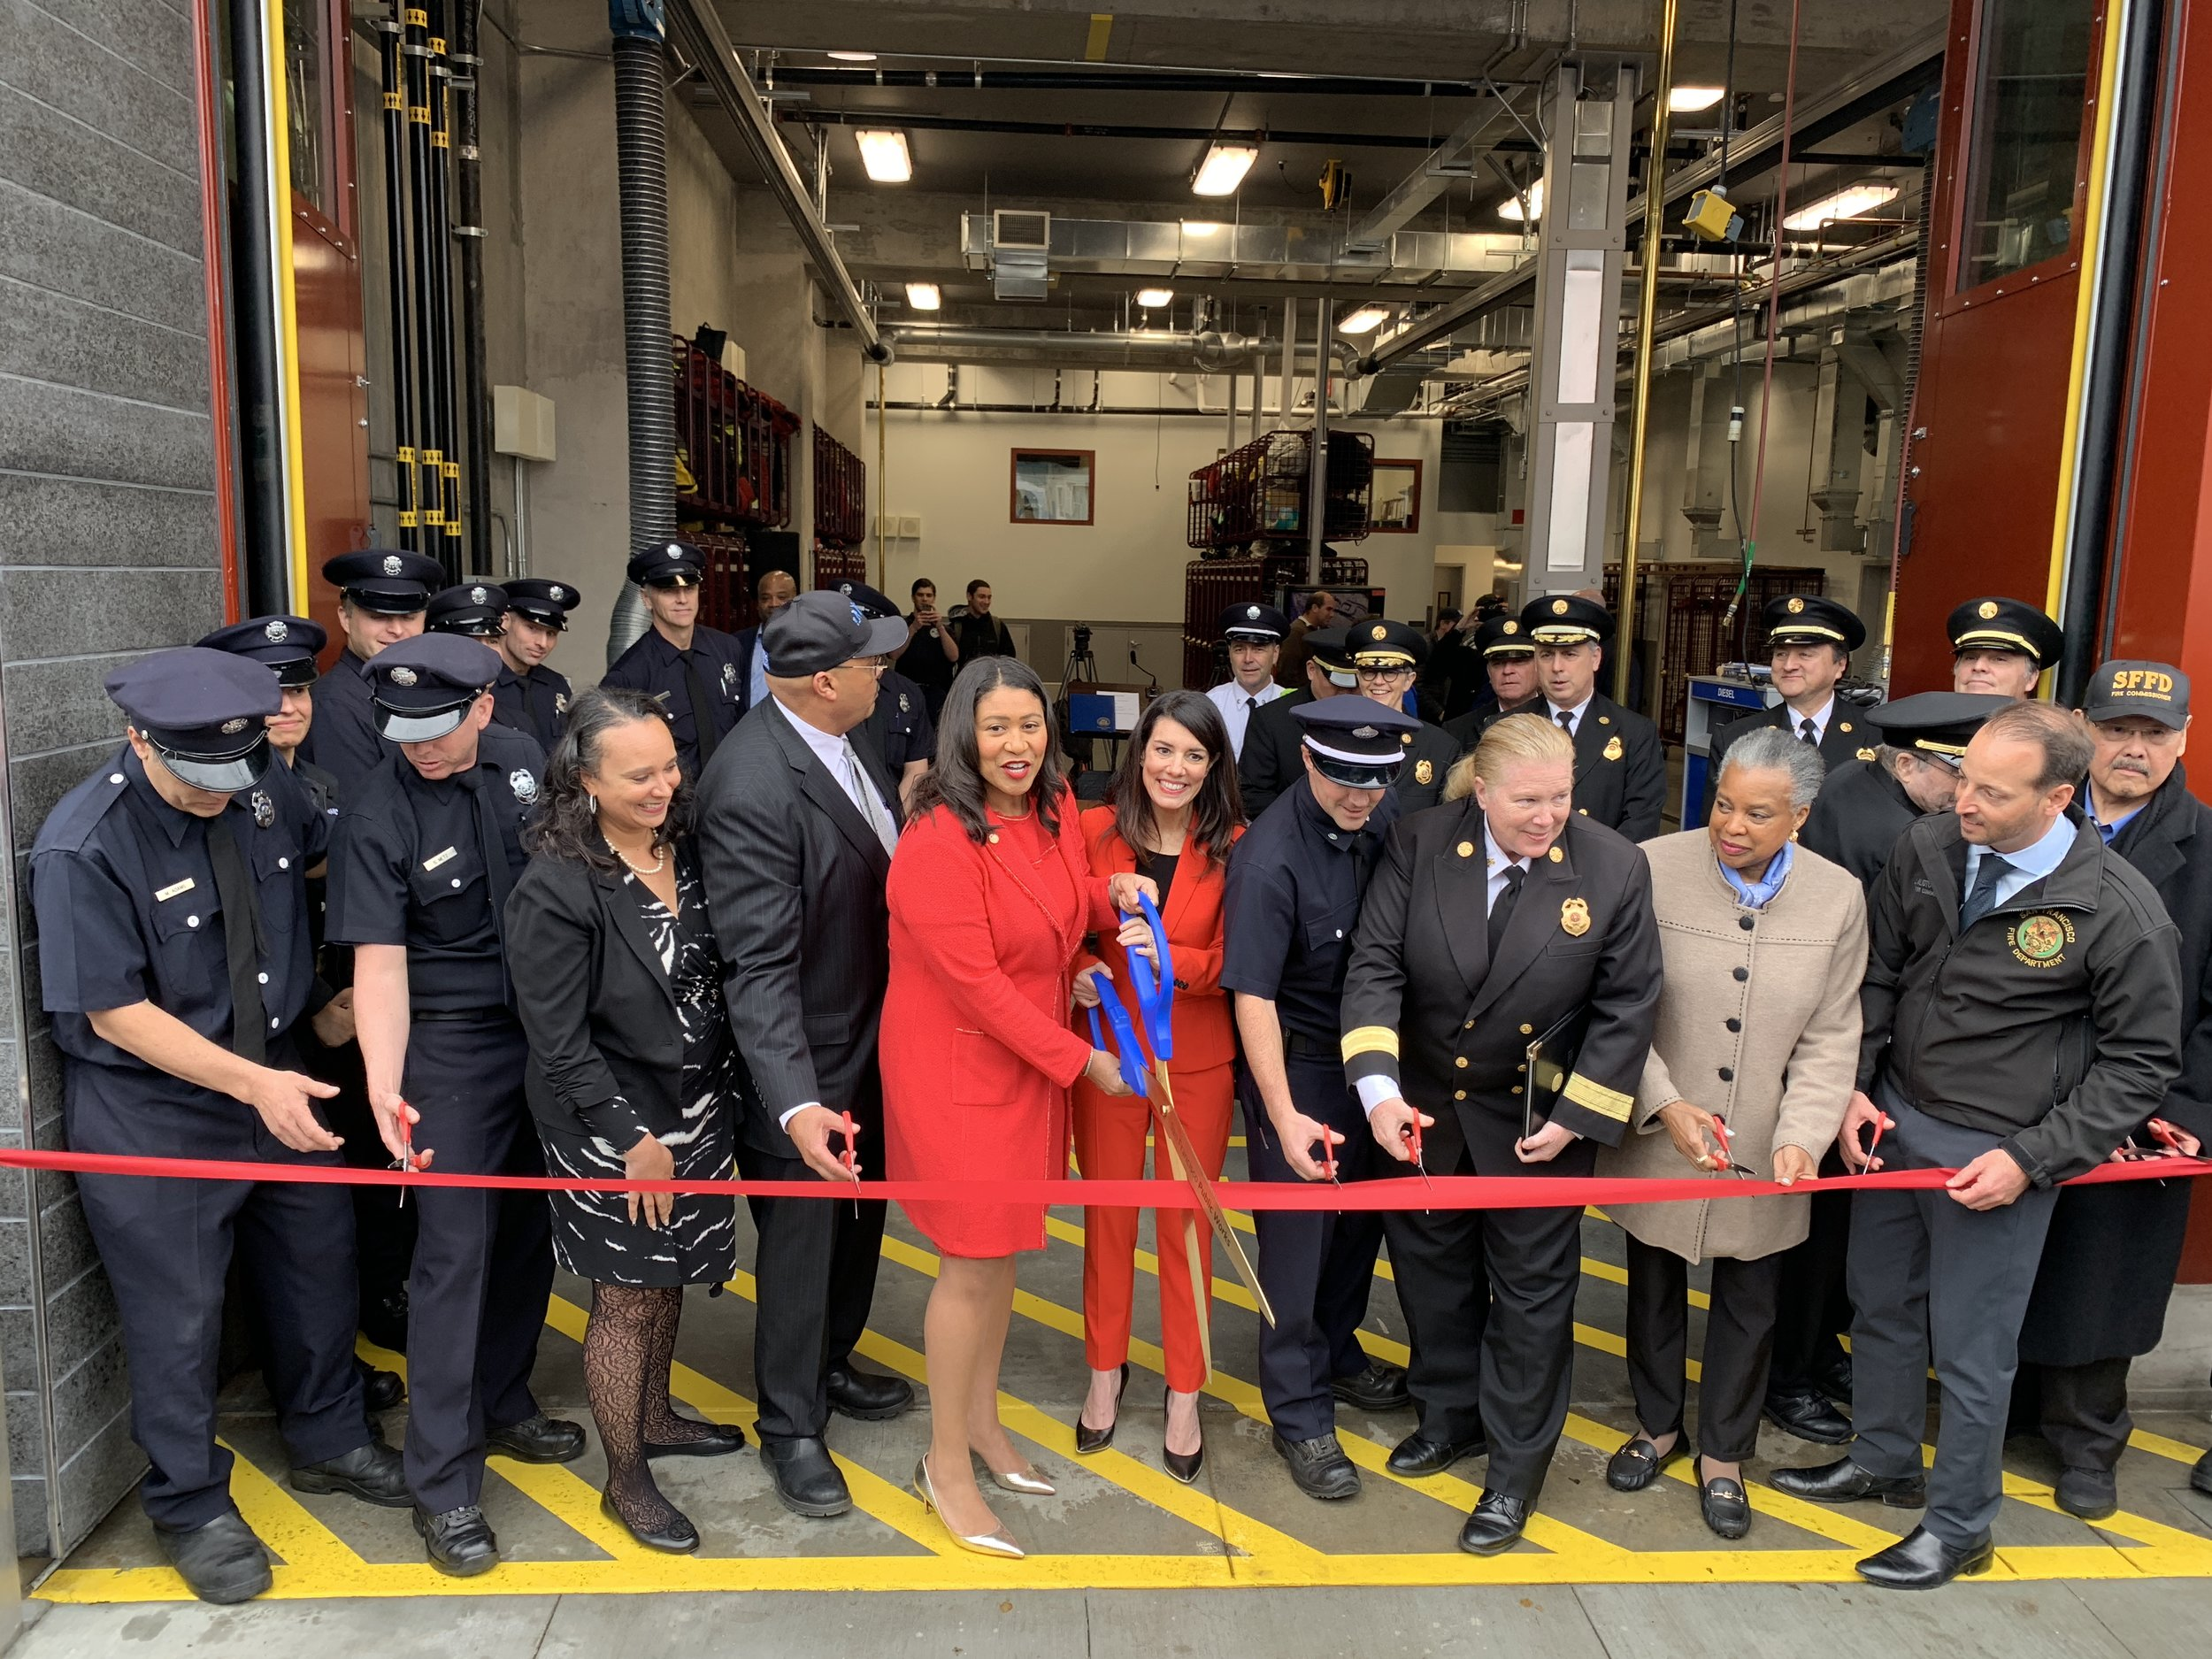 San Francisco Mayor London Breed at the Ribbon Cutting Ceremony on January 31, 2019.